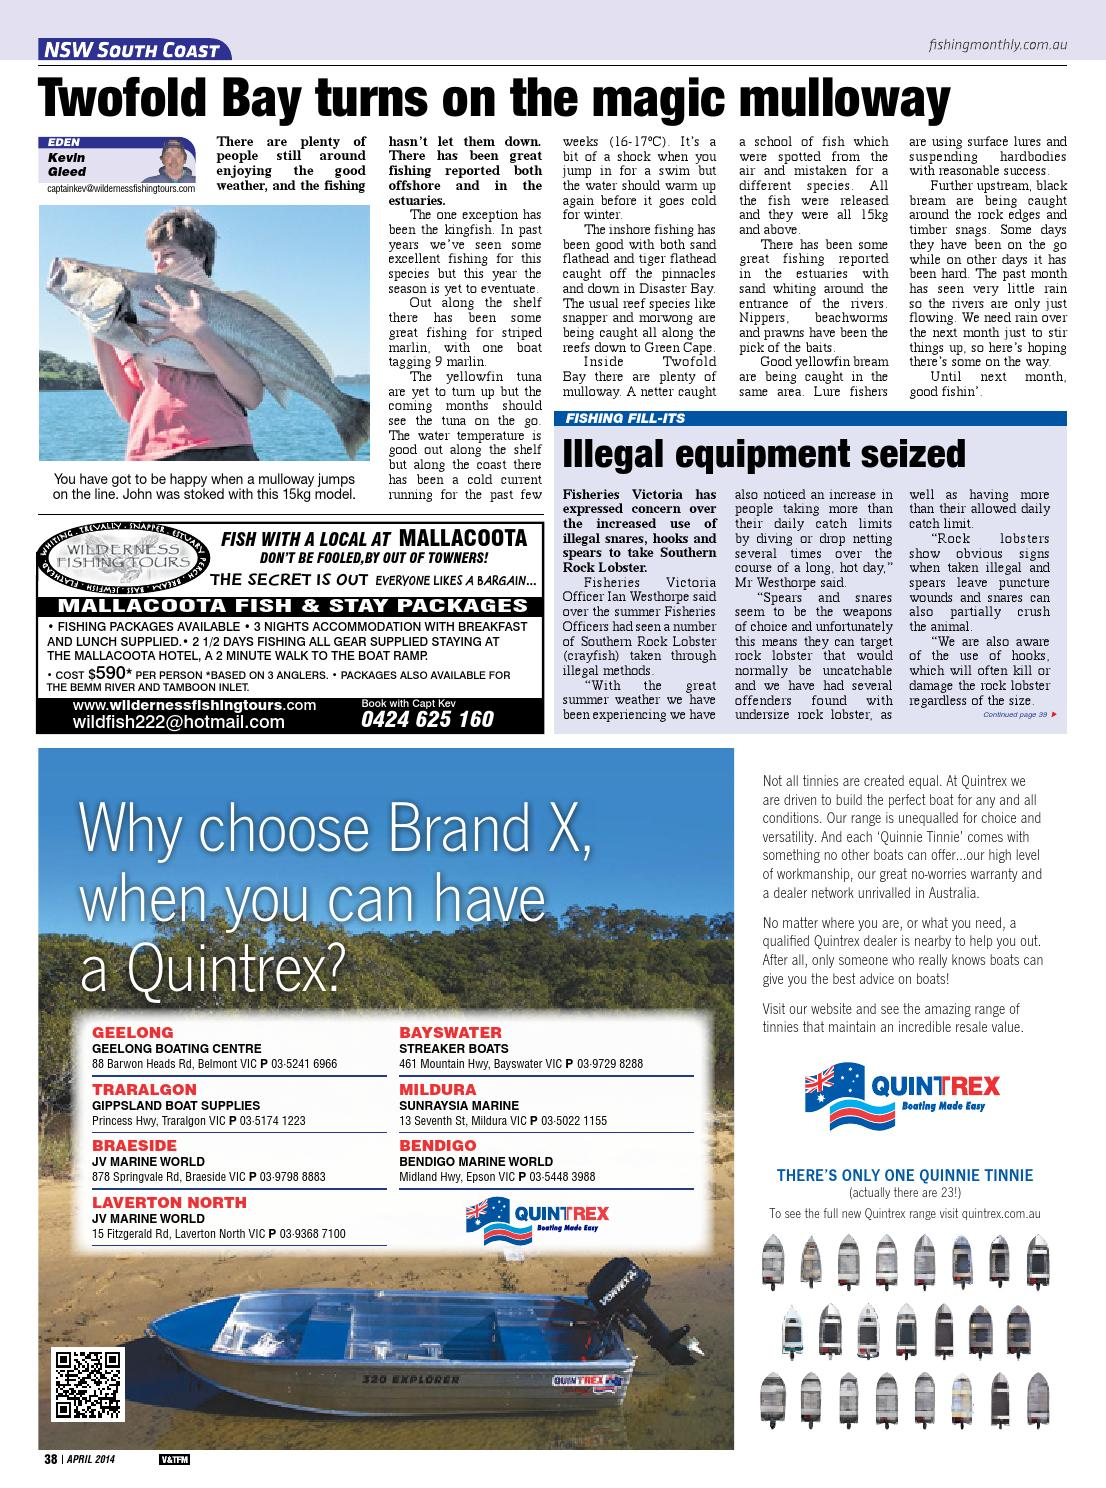 Victoria and Tasmania Fishing Monthly - April 2014